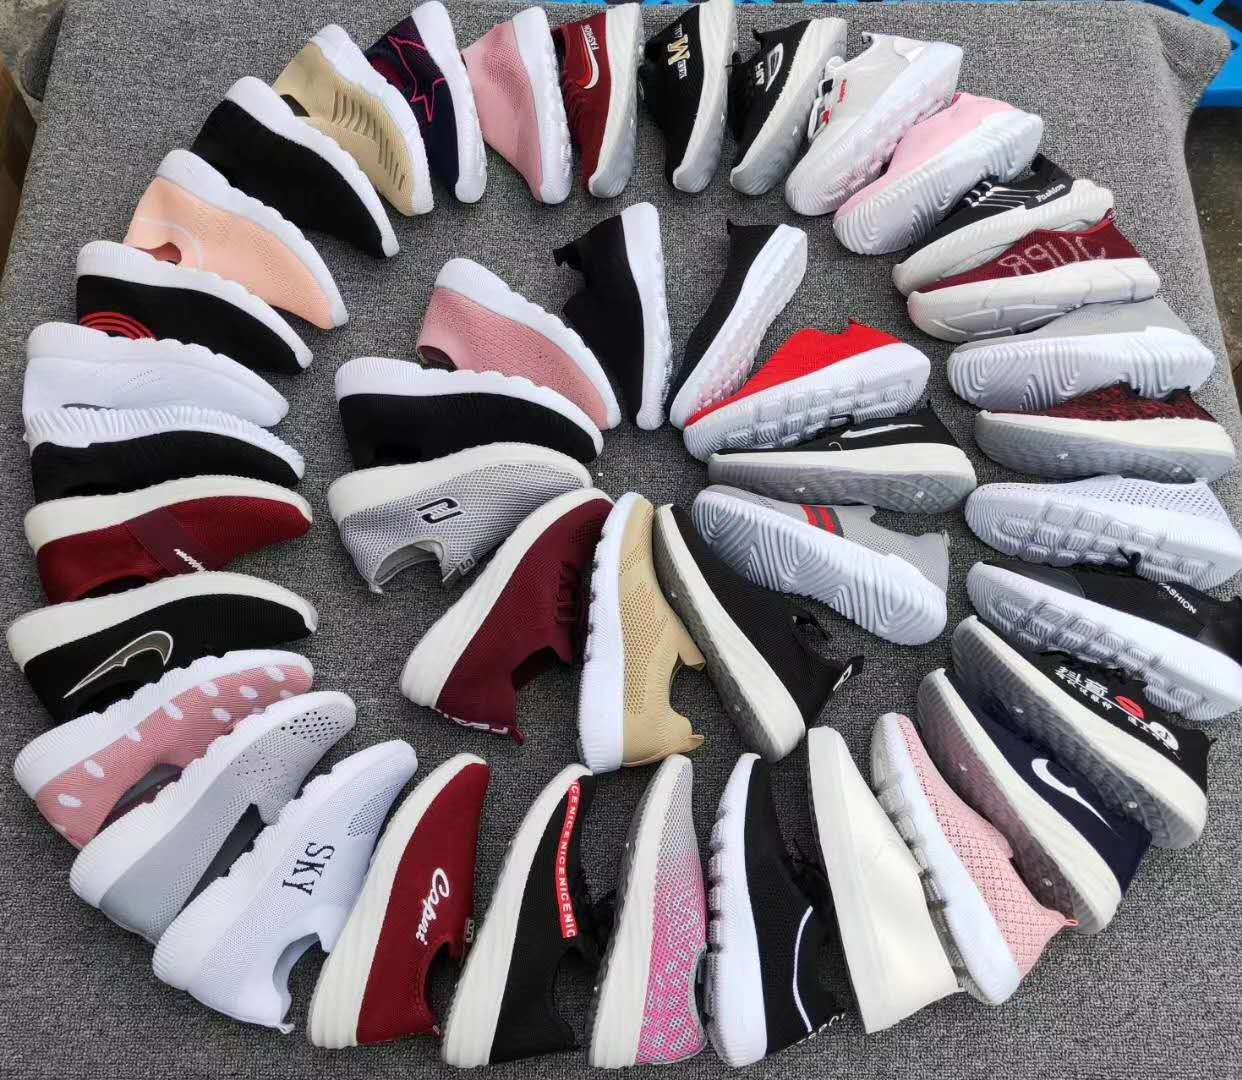 2020 Custom Manufacturer cheaper and good quality Sneakers Fashion Casual Shoes Women